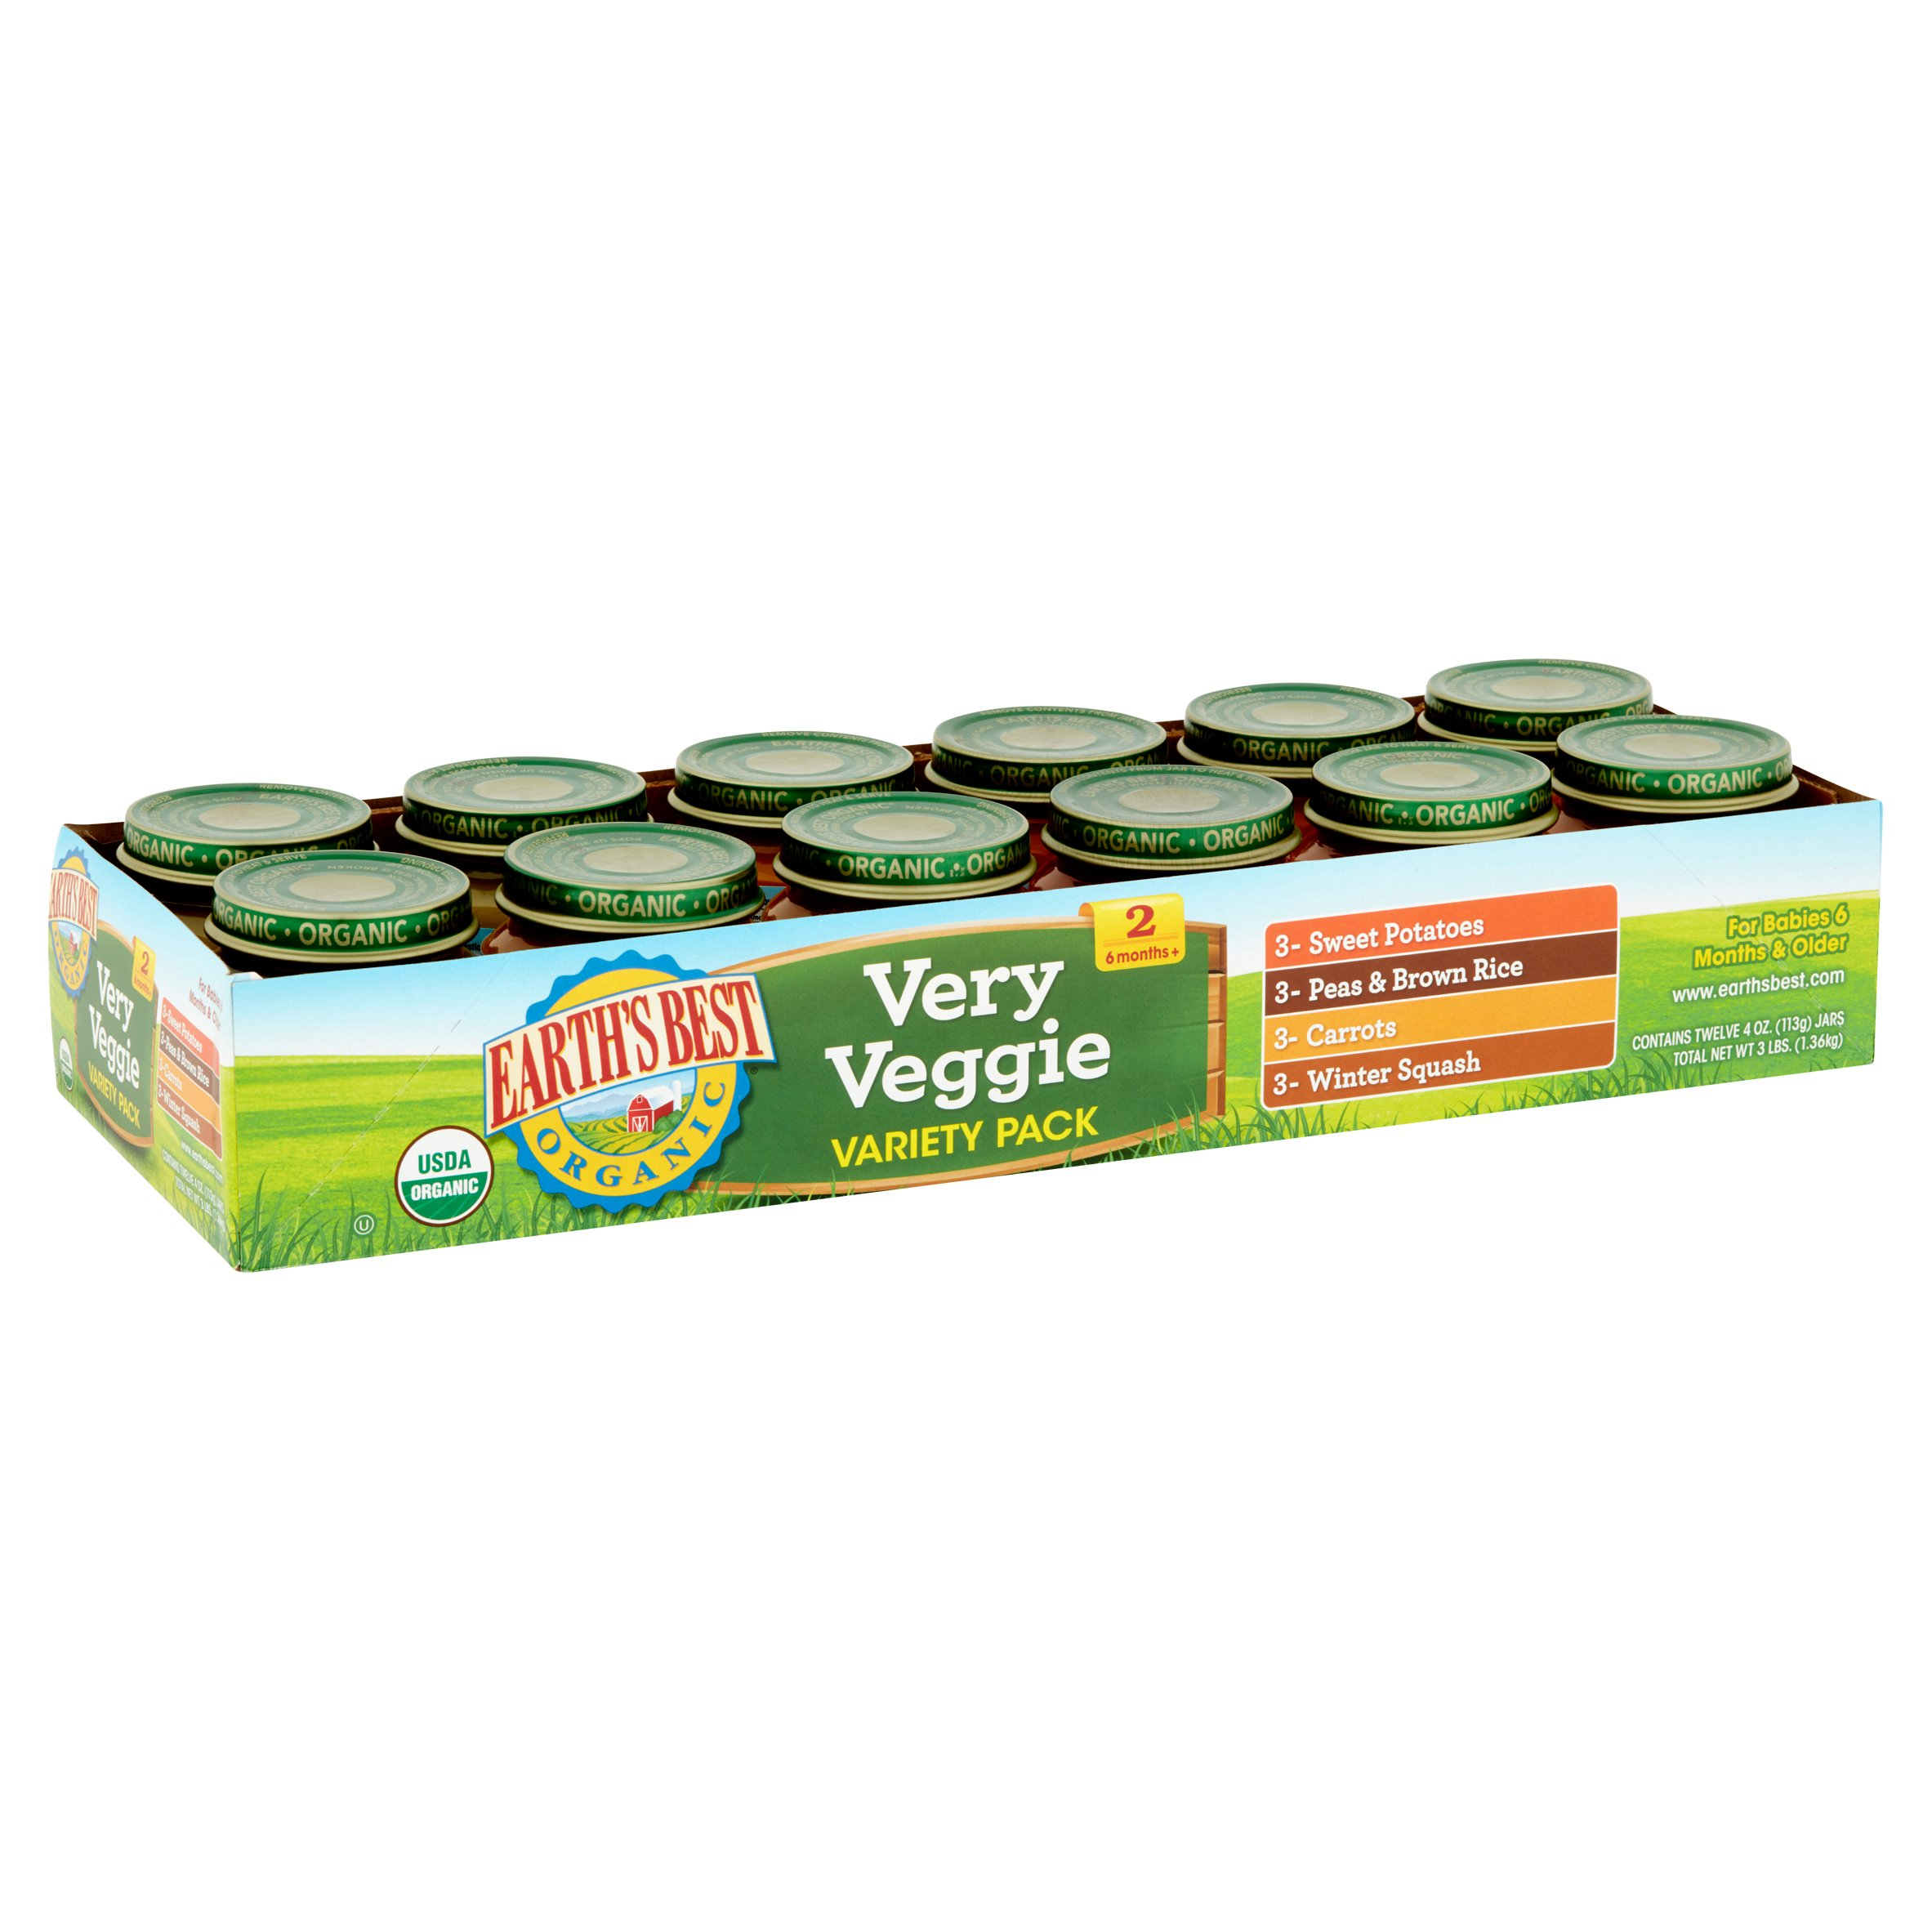 Earth's Best Organic Very Veggie Variety Pack 2 6 Months+, 4 oz, 12 count